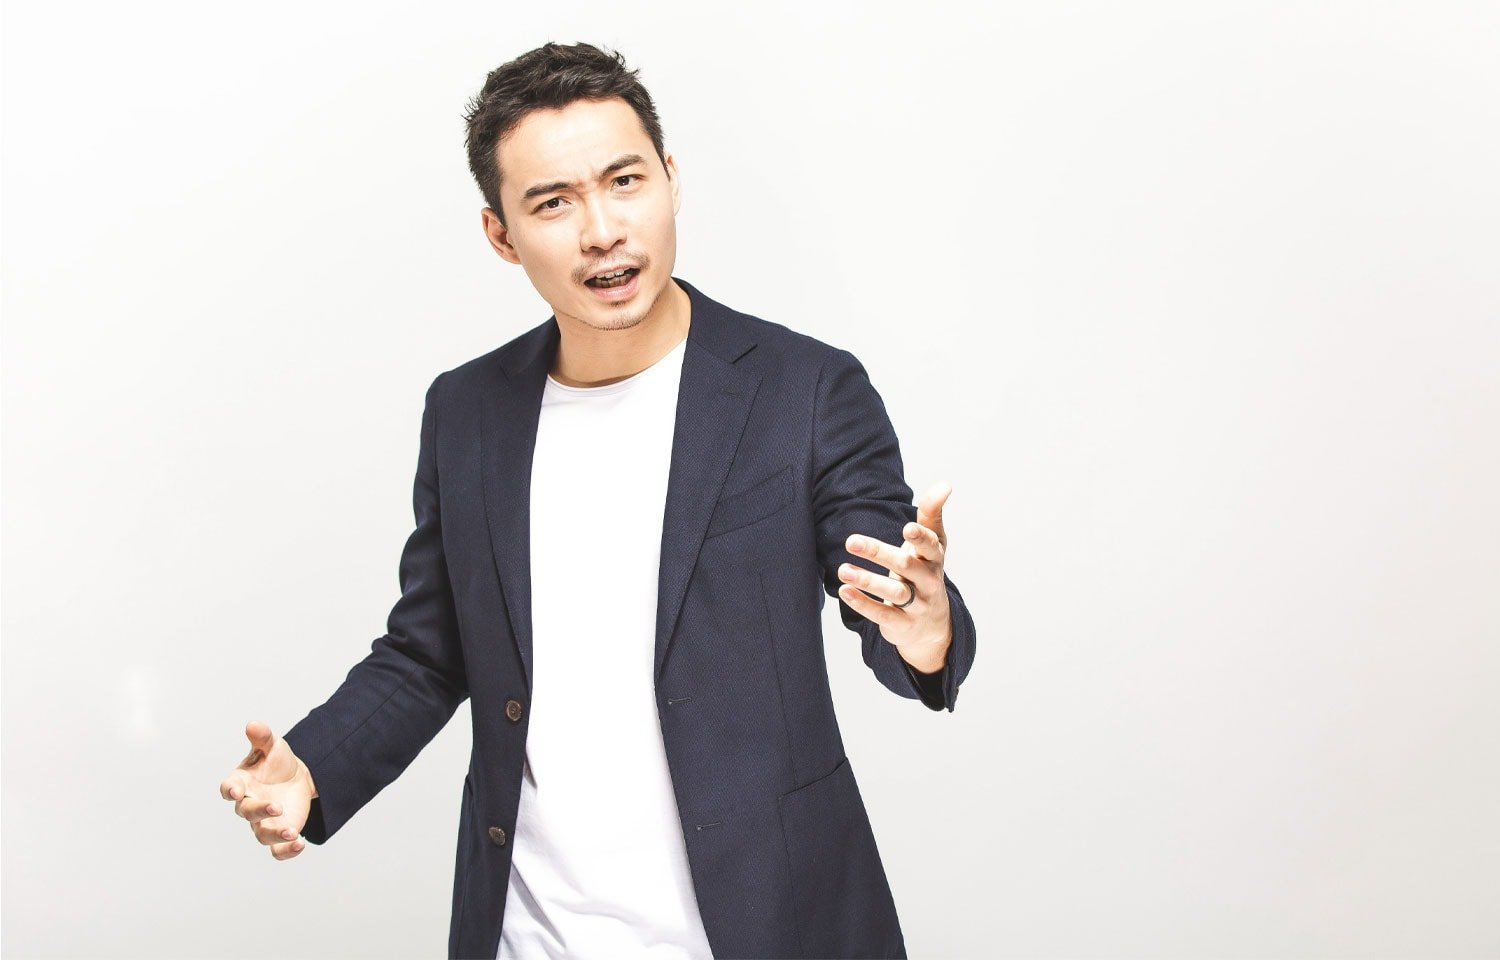 NIGEL NG BRINGS HIS SHOW CULTURE SHOCKED TO SOHO THEATRE